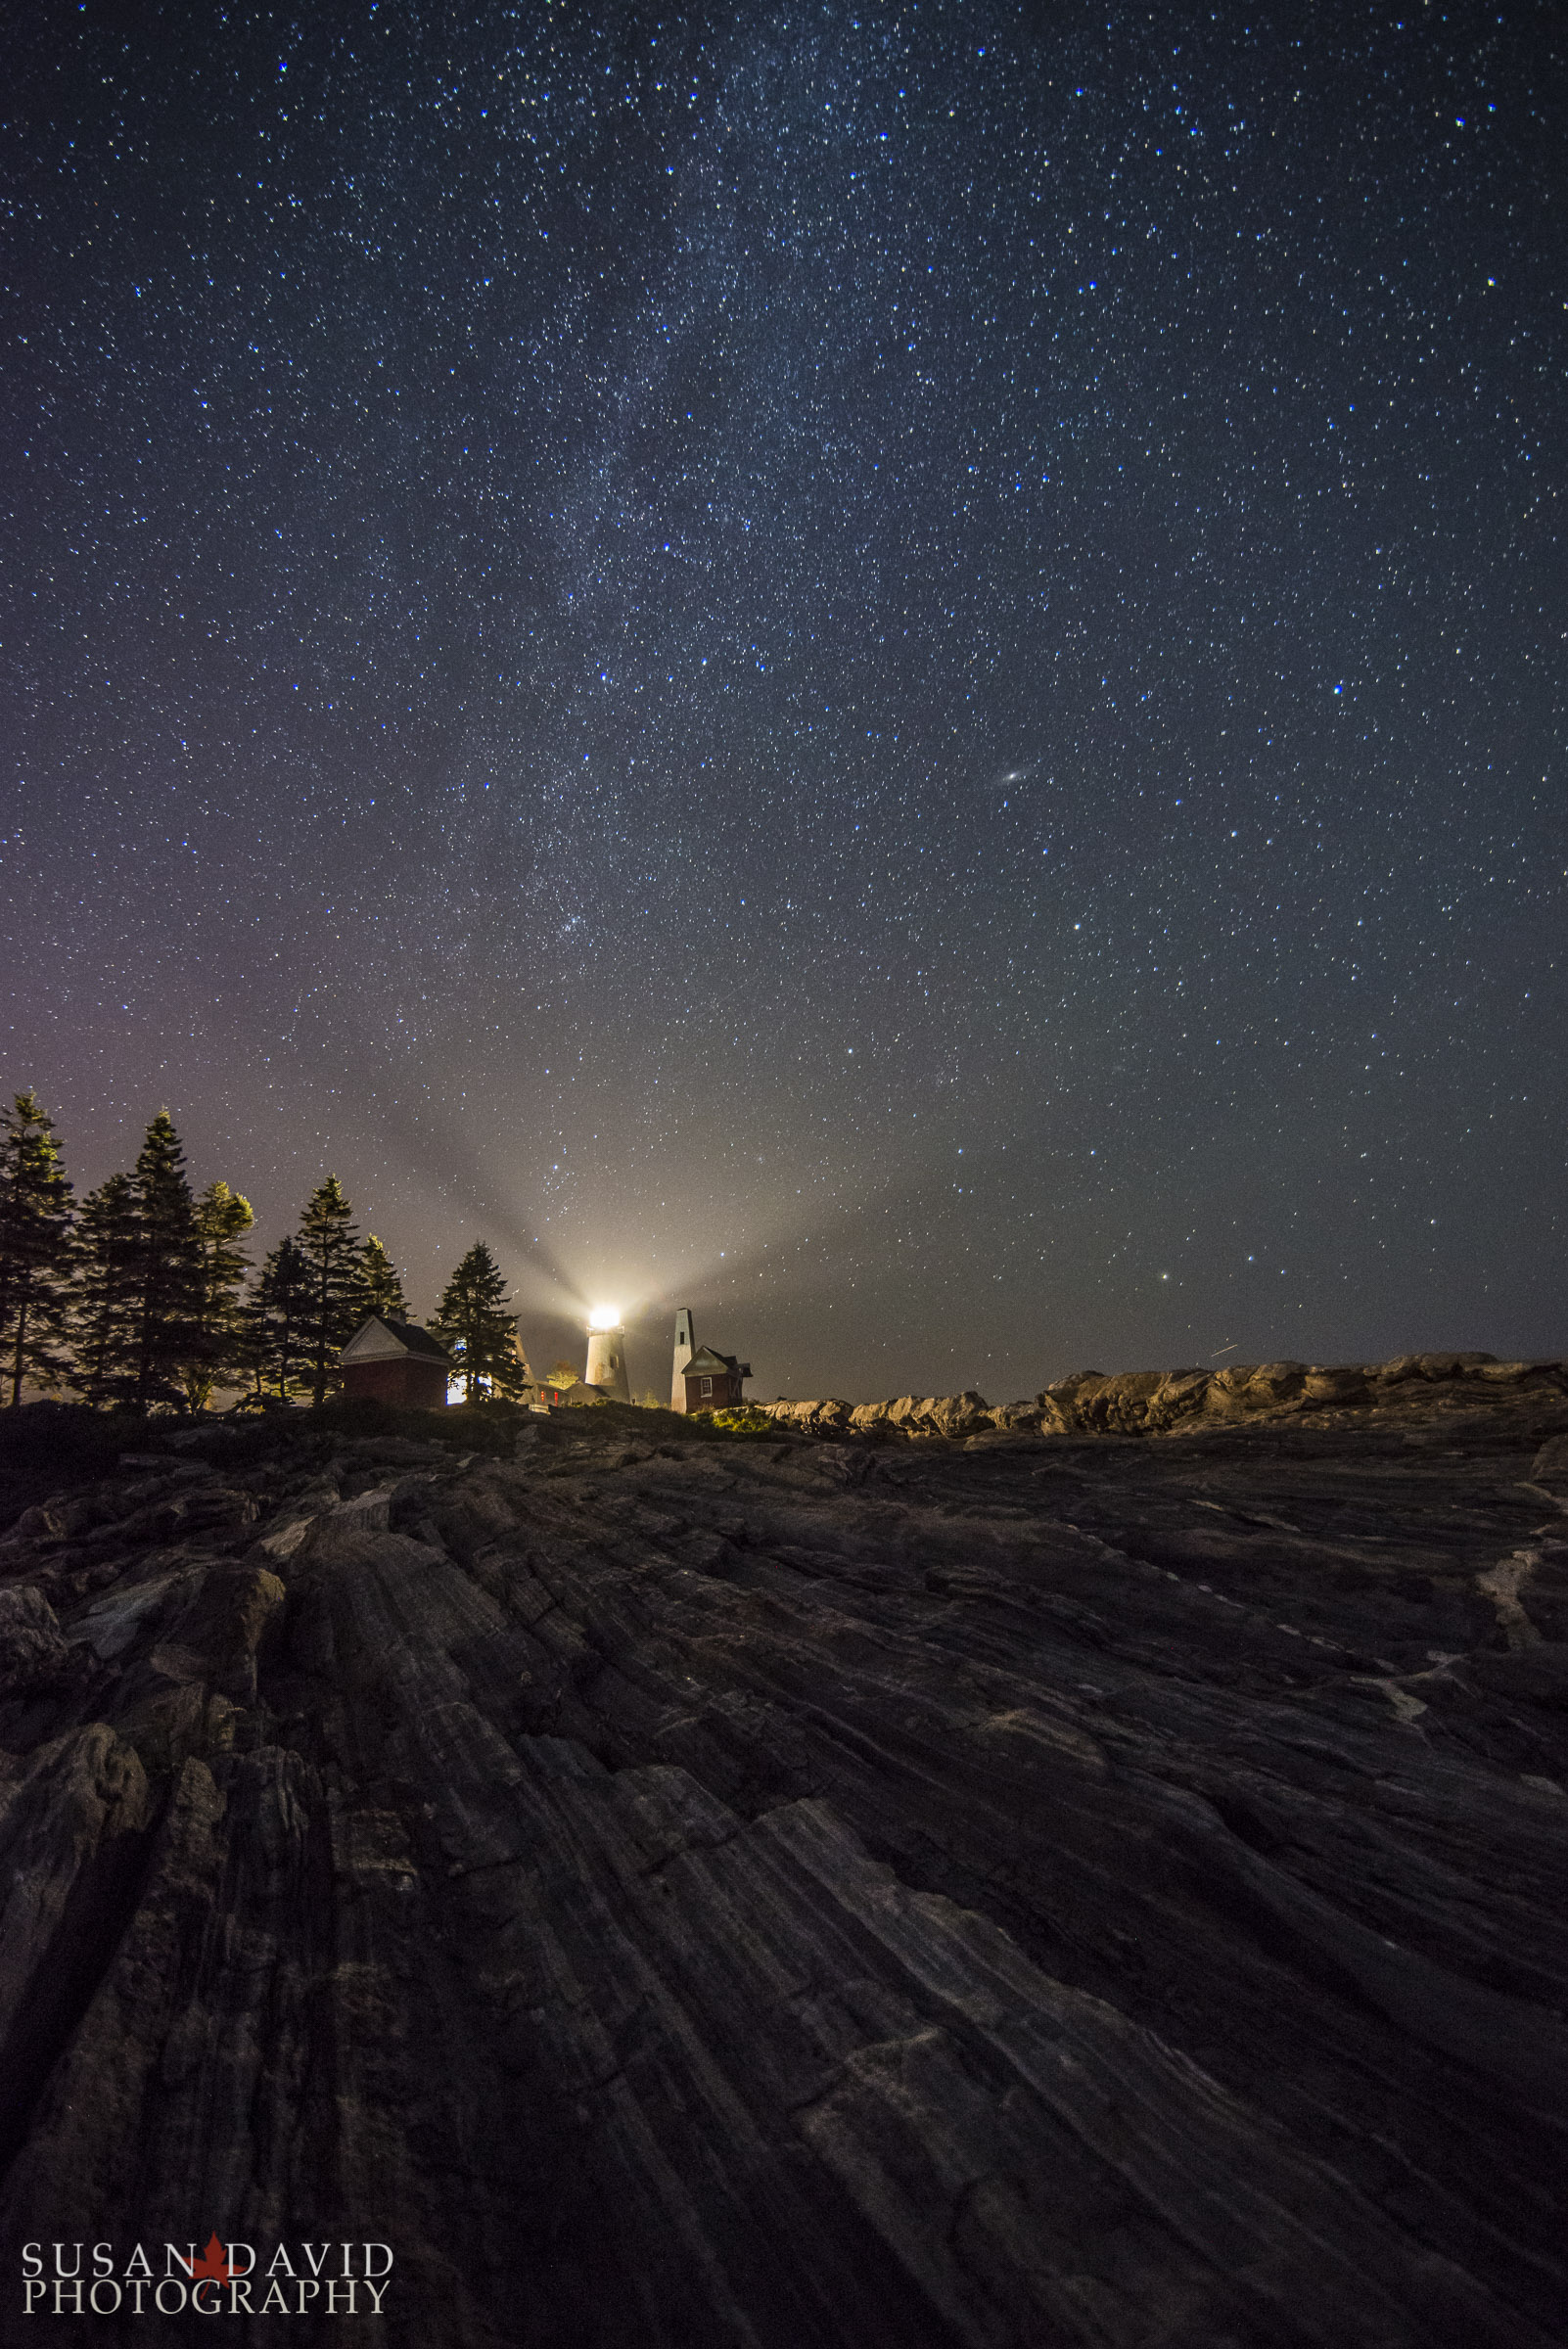 Pemaquid Pt Lighthouse under Starry Skies